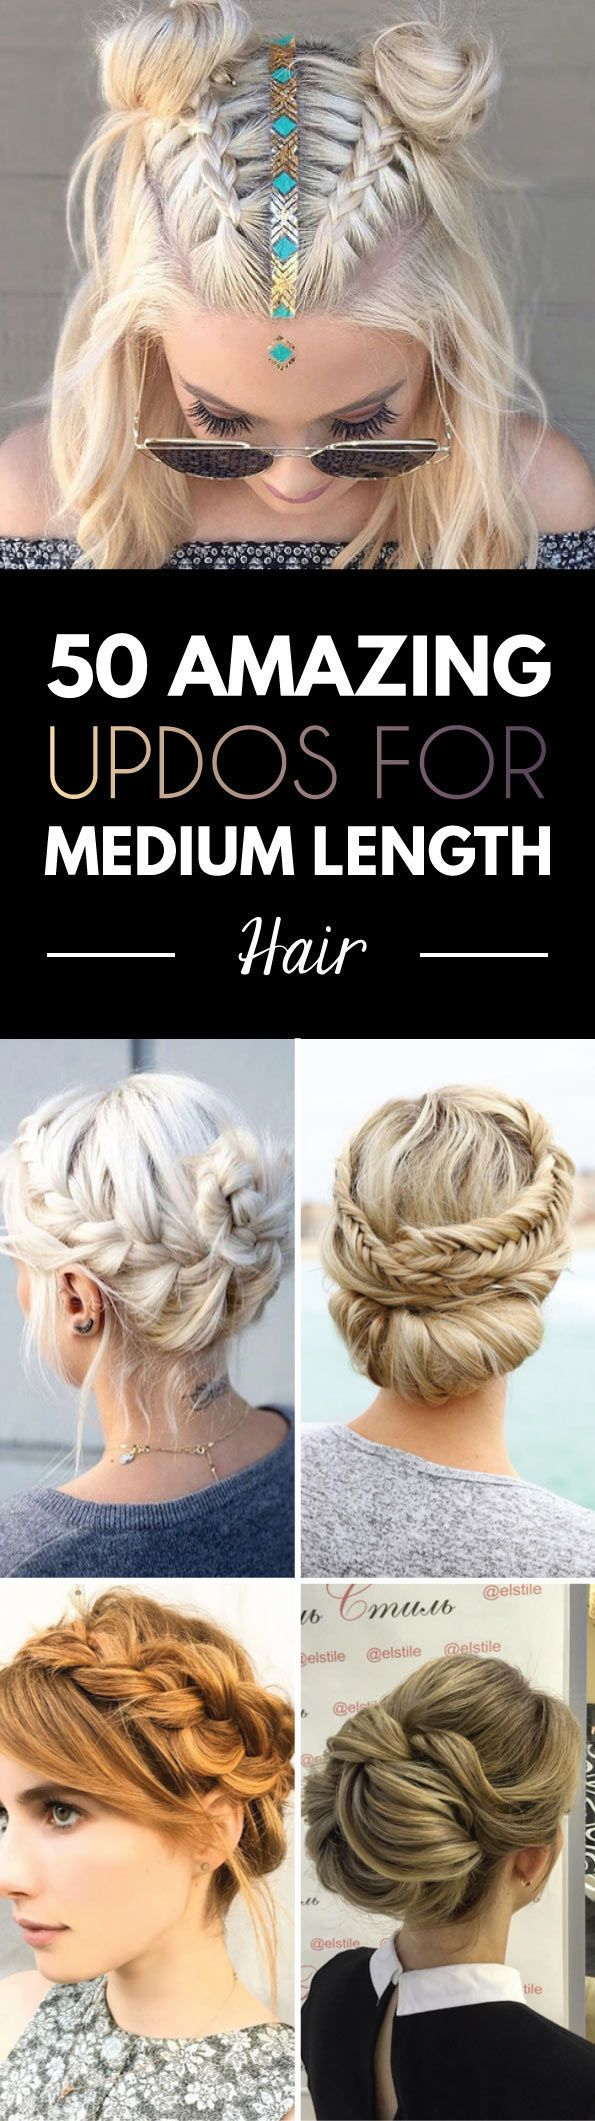 amazing updos for medium length hair fishtail updo lace braid